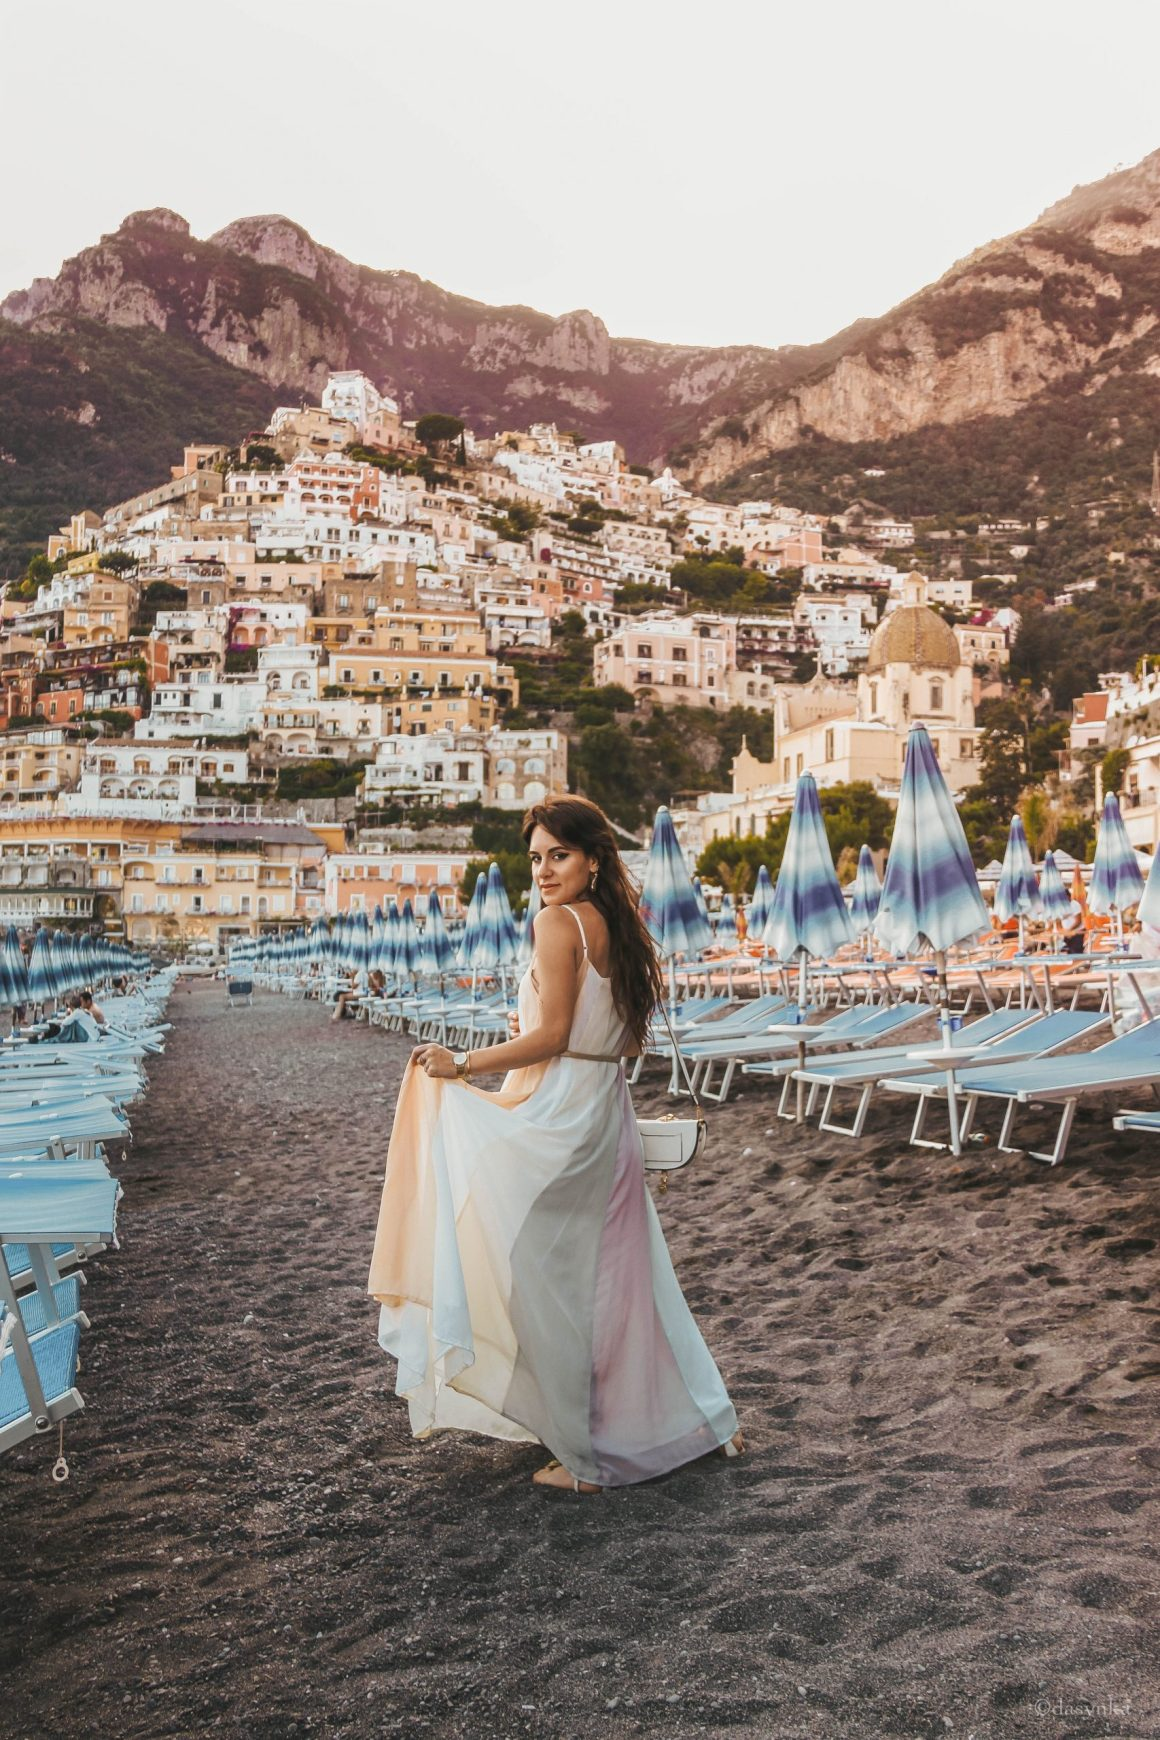 dasynka-fashion-blog-blogger-influencer-inspiration-shooting-model-globettrotter-travel-girl-lookbook-instagram-long-hair-street-style-casual-italy-lifestyle-outfit-poses-positano-amalfi-coast-blue-long-dress-colorful-beach-marina-grande-chloe-bag-sea-italy-look-ideas-elegant-italian-style-sandals-tips-atrani-habits